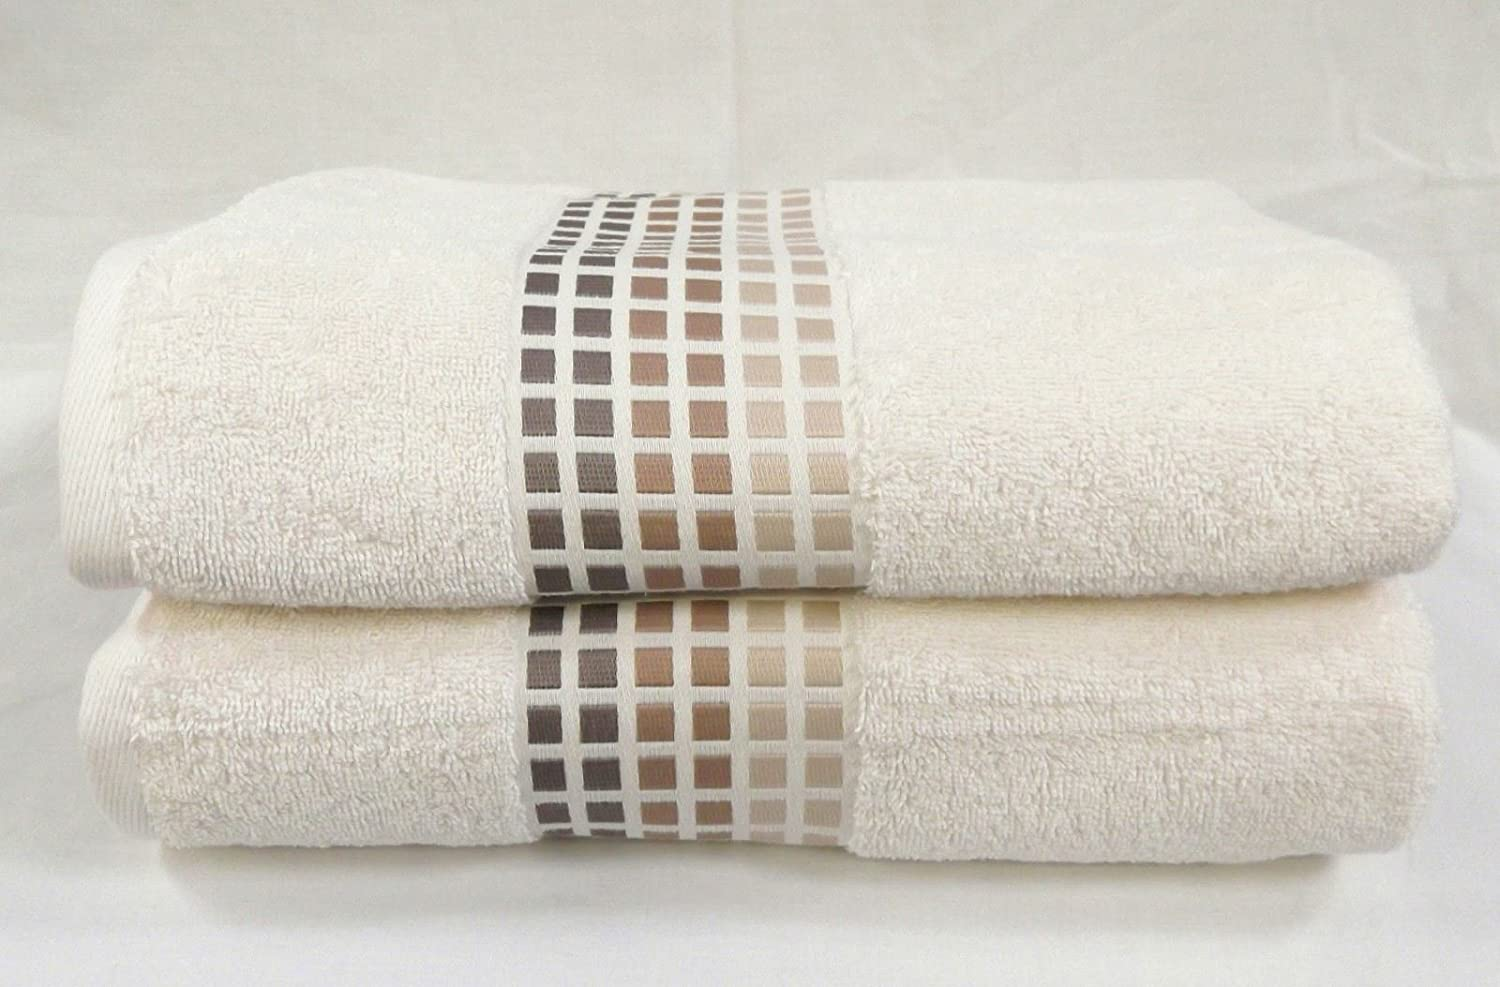 Sally Mosaic Hand Towels One Pair 2 Cream Mocha Brown Squares Bathroom Super Soft 100 Cotton Hallways Amazon Co Uk Kitchen Home